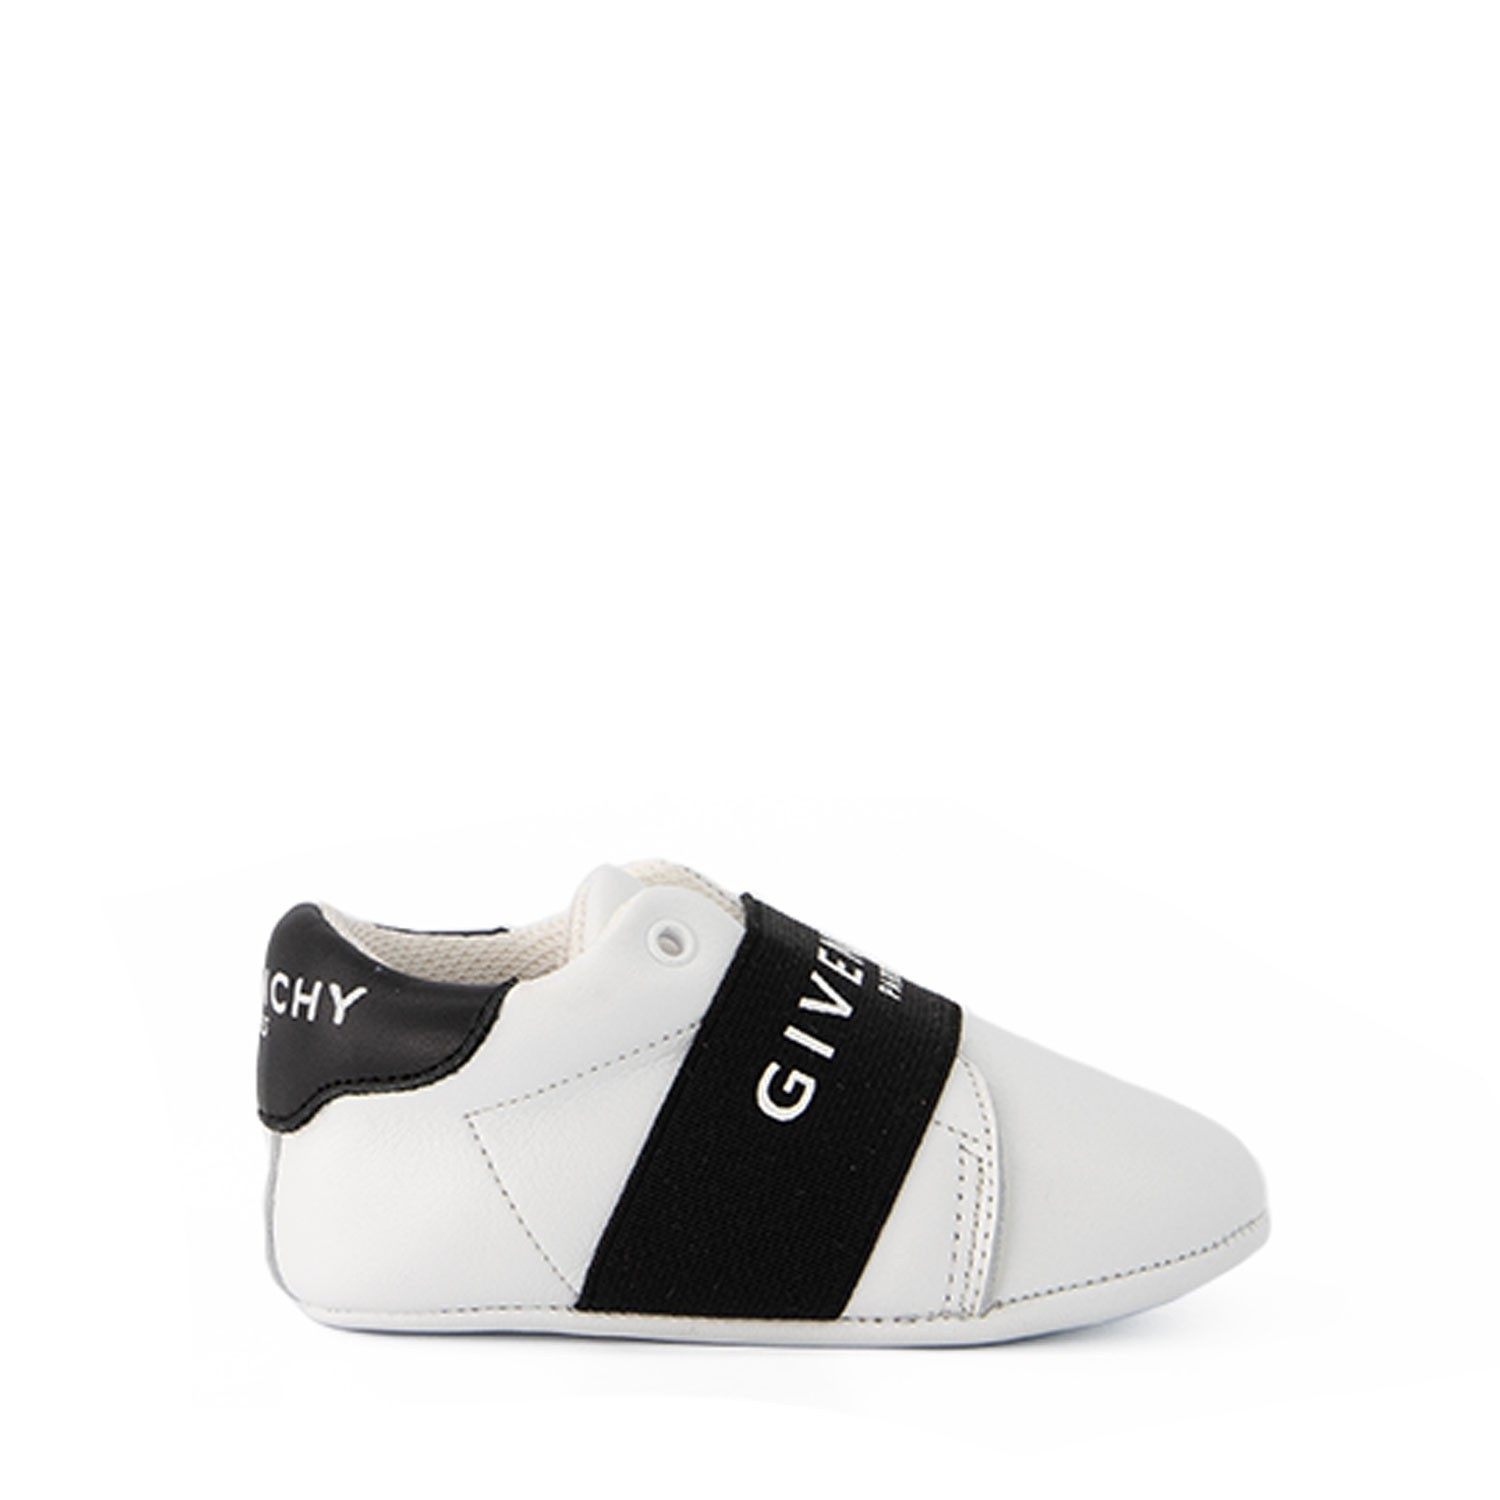 Afbeelding van Givenchy H99016 babysneakers wit